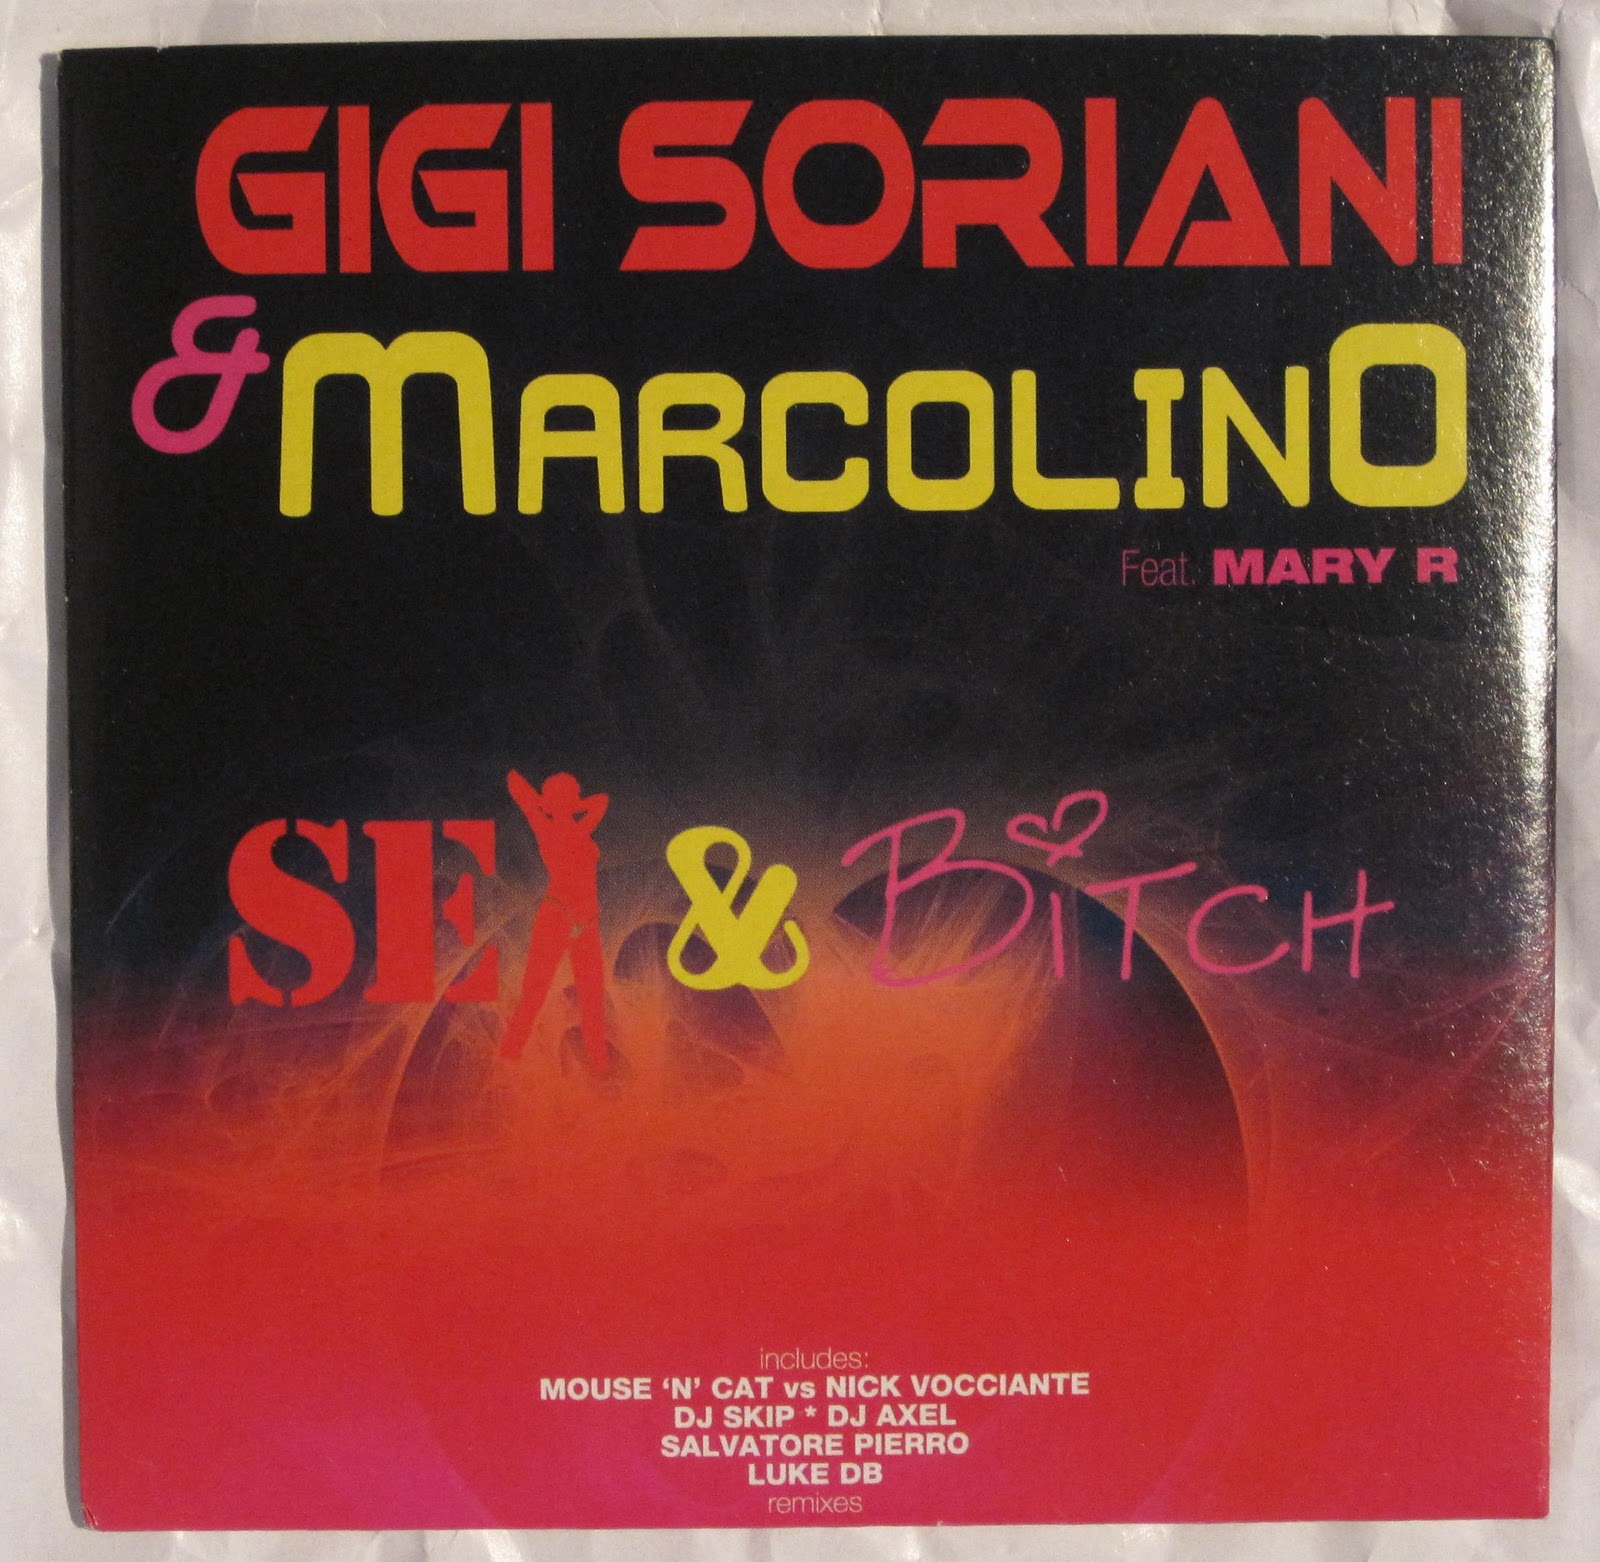 gigi soriani and marcolino feat mary r sex and bitch ... but why not give these to the elderly or to pregnant women (BTW there ...